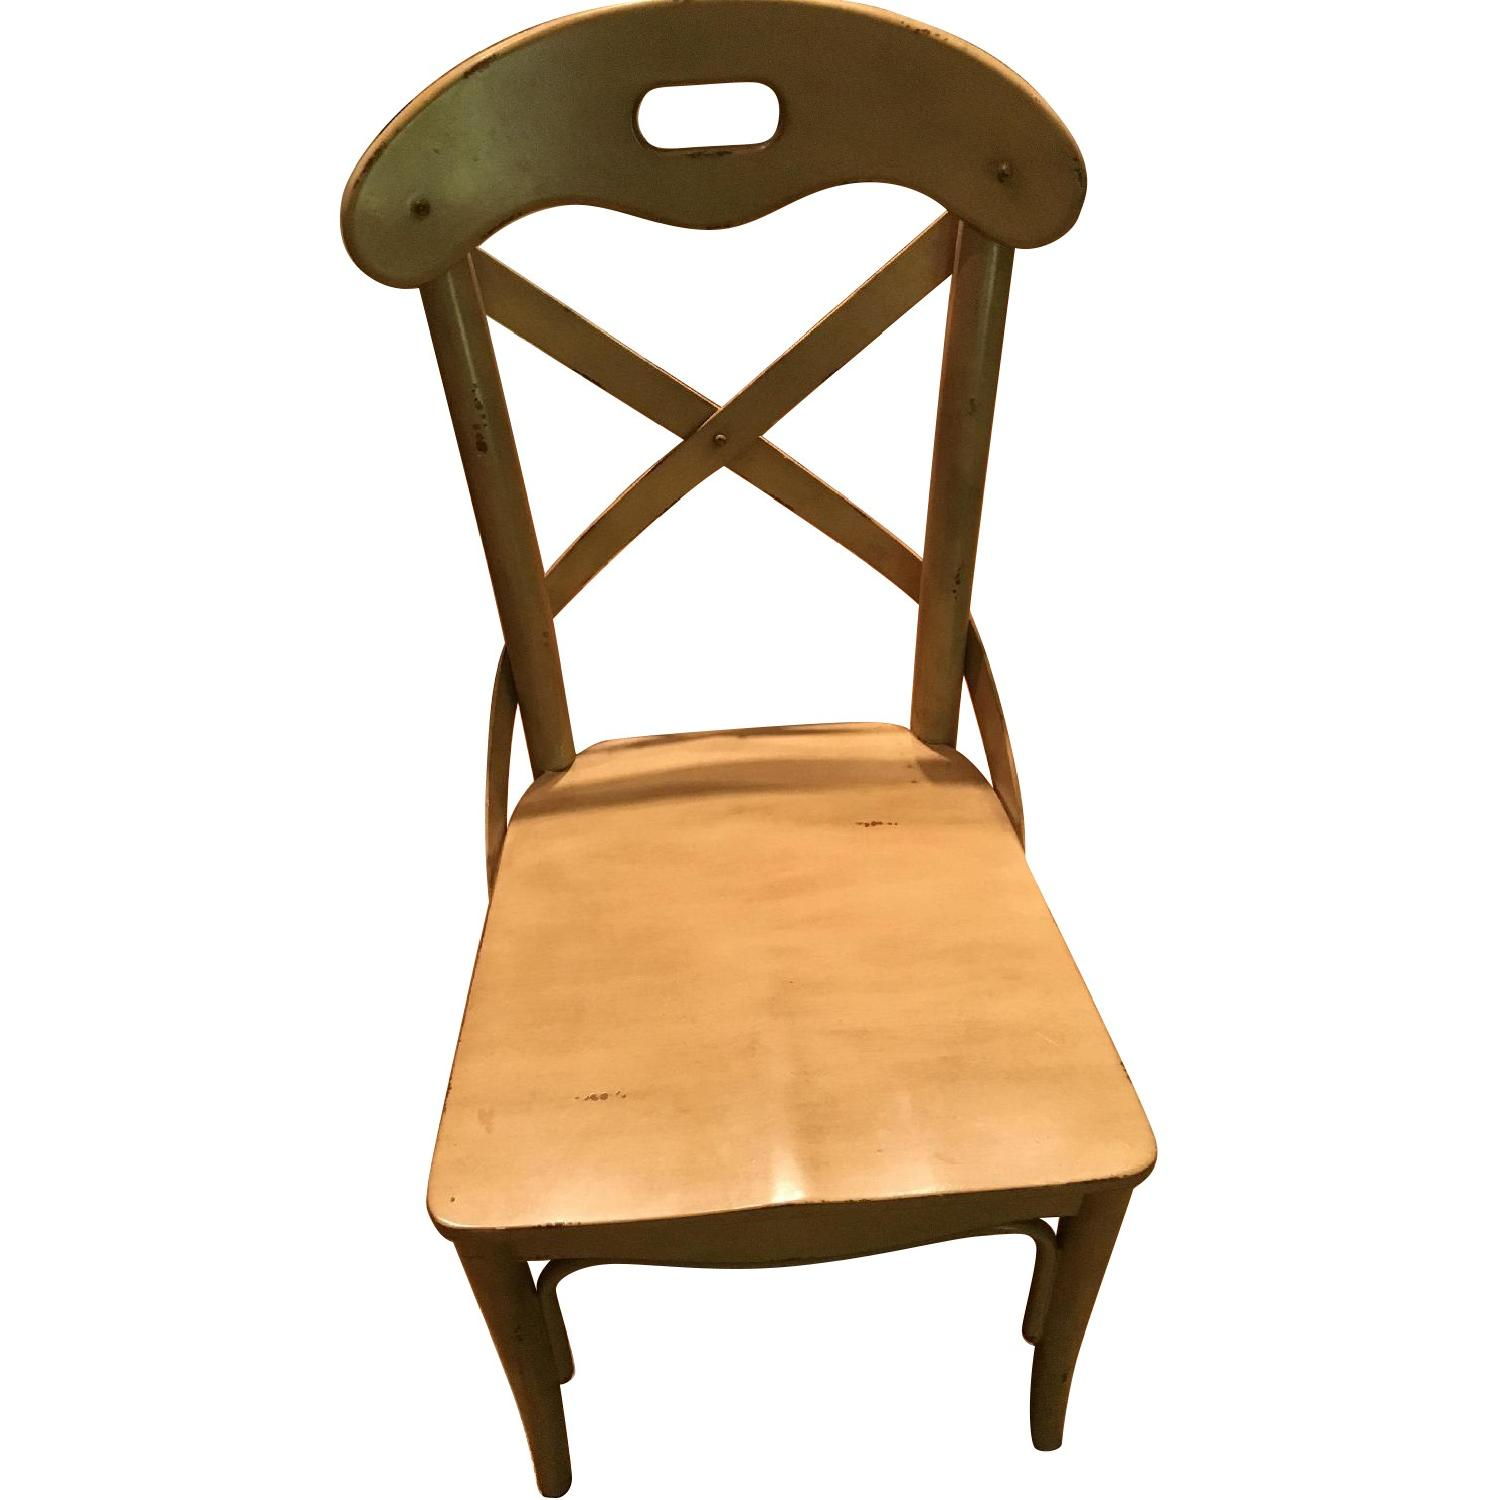 Pier 1 Curved Back Dining Chairs in Antique Ivory - Pair - image-0